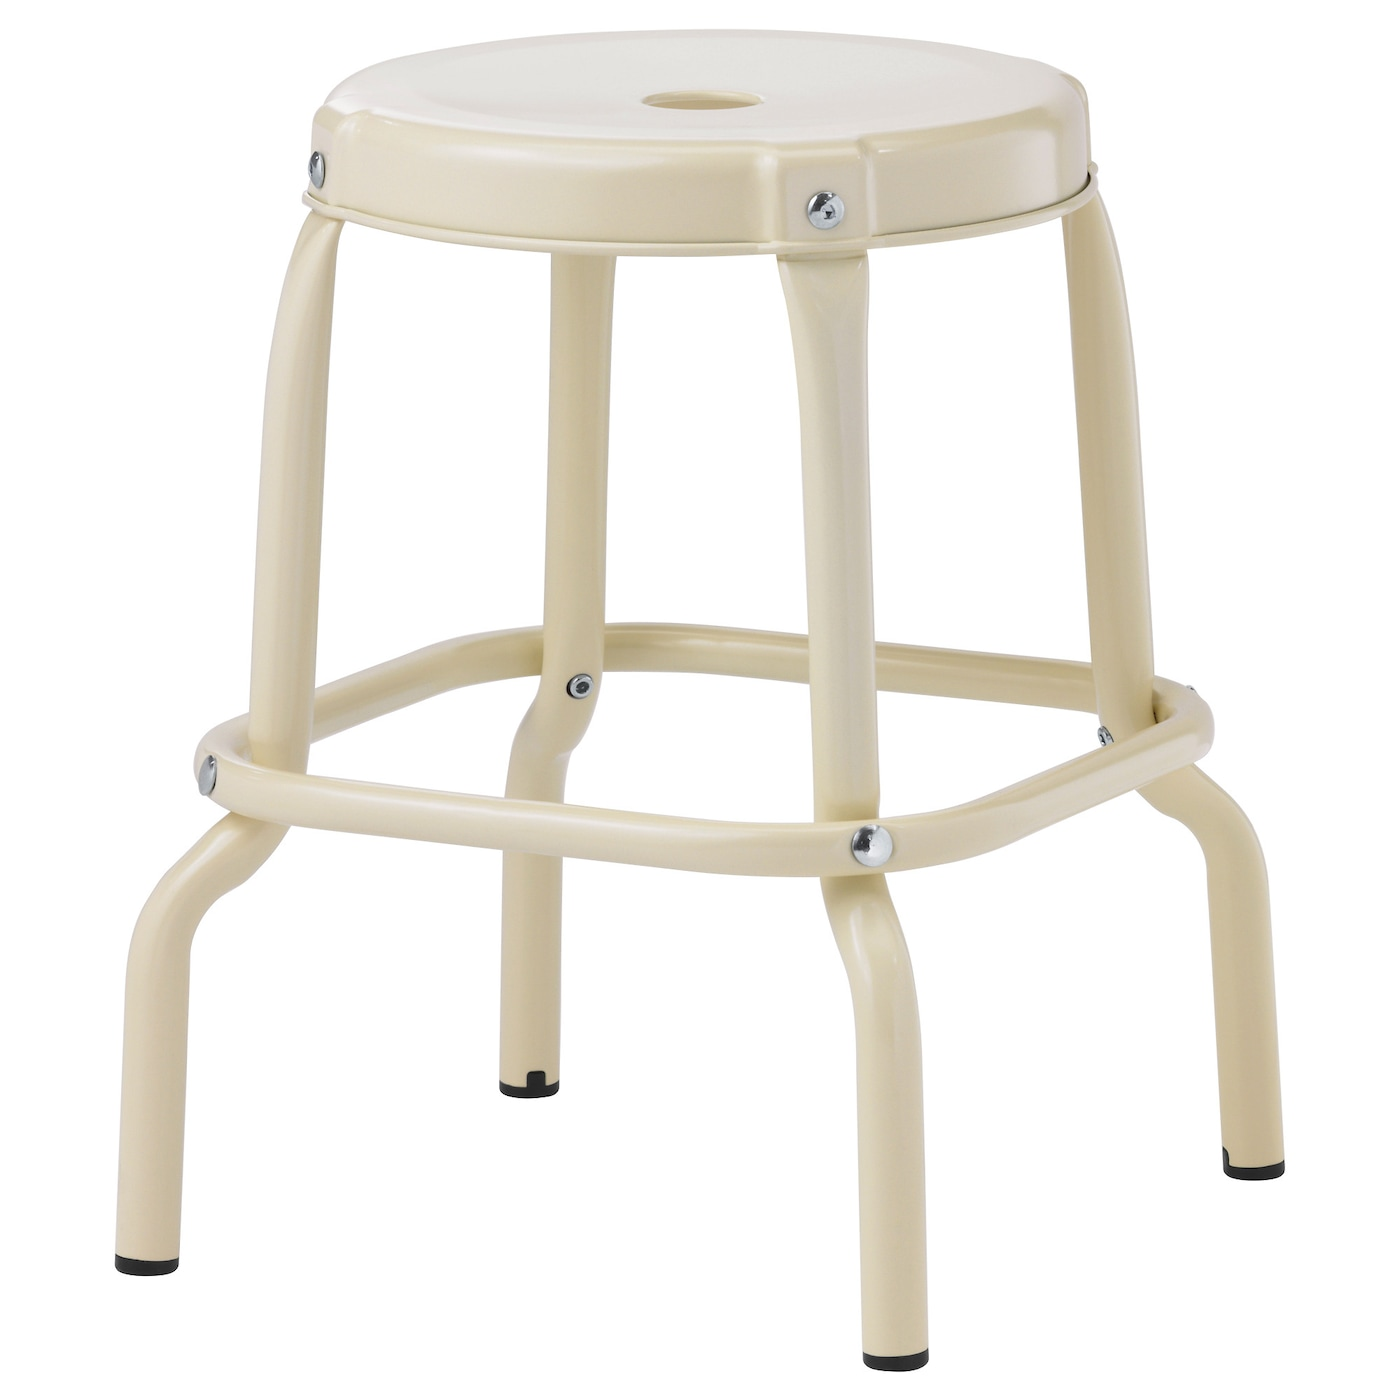 IKEA RÅSKOG stool Easy to move thanks to the hole in the seat.